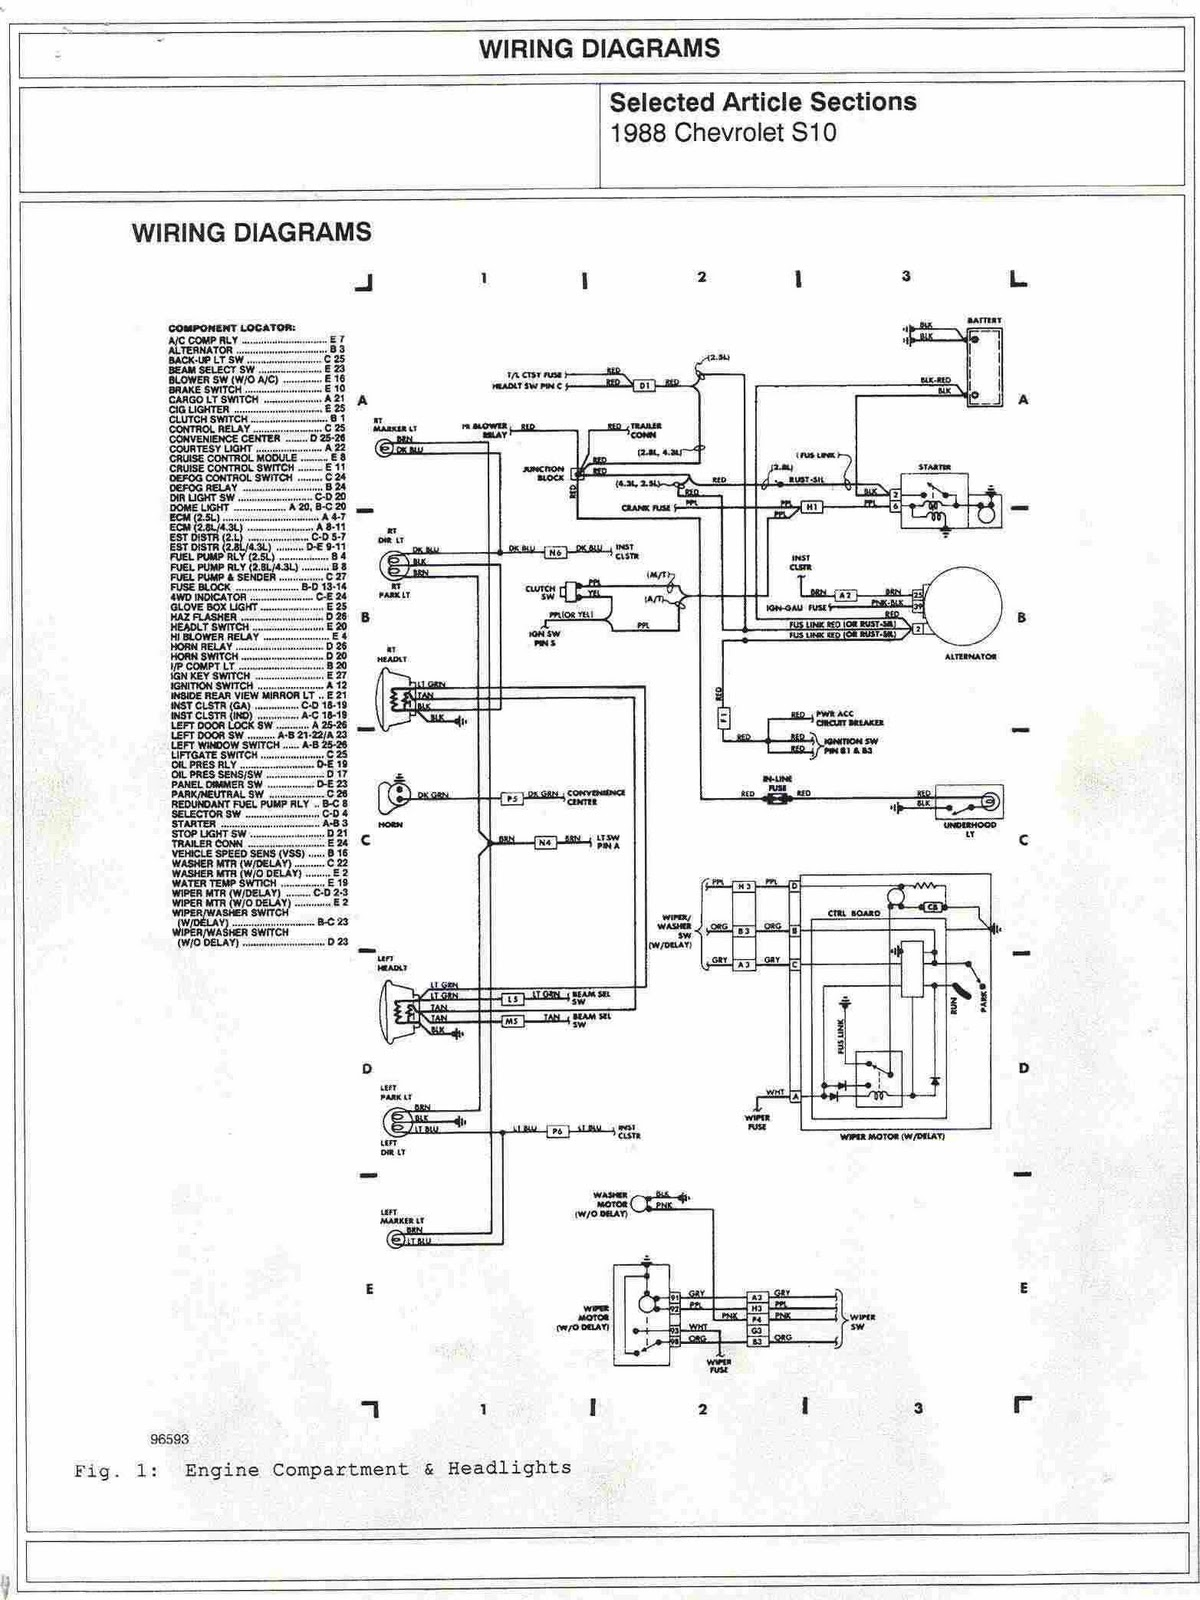 1988+Chevrolet+S10+Engine+Compartment+and+Headlights+Wiring+Diagrams 95 s10 wiring diagram 95 tahoe wiring diagram \u2022 wiring diagrams Control Panel Electrical Wiring Basics at webbmarketing.co